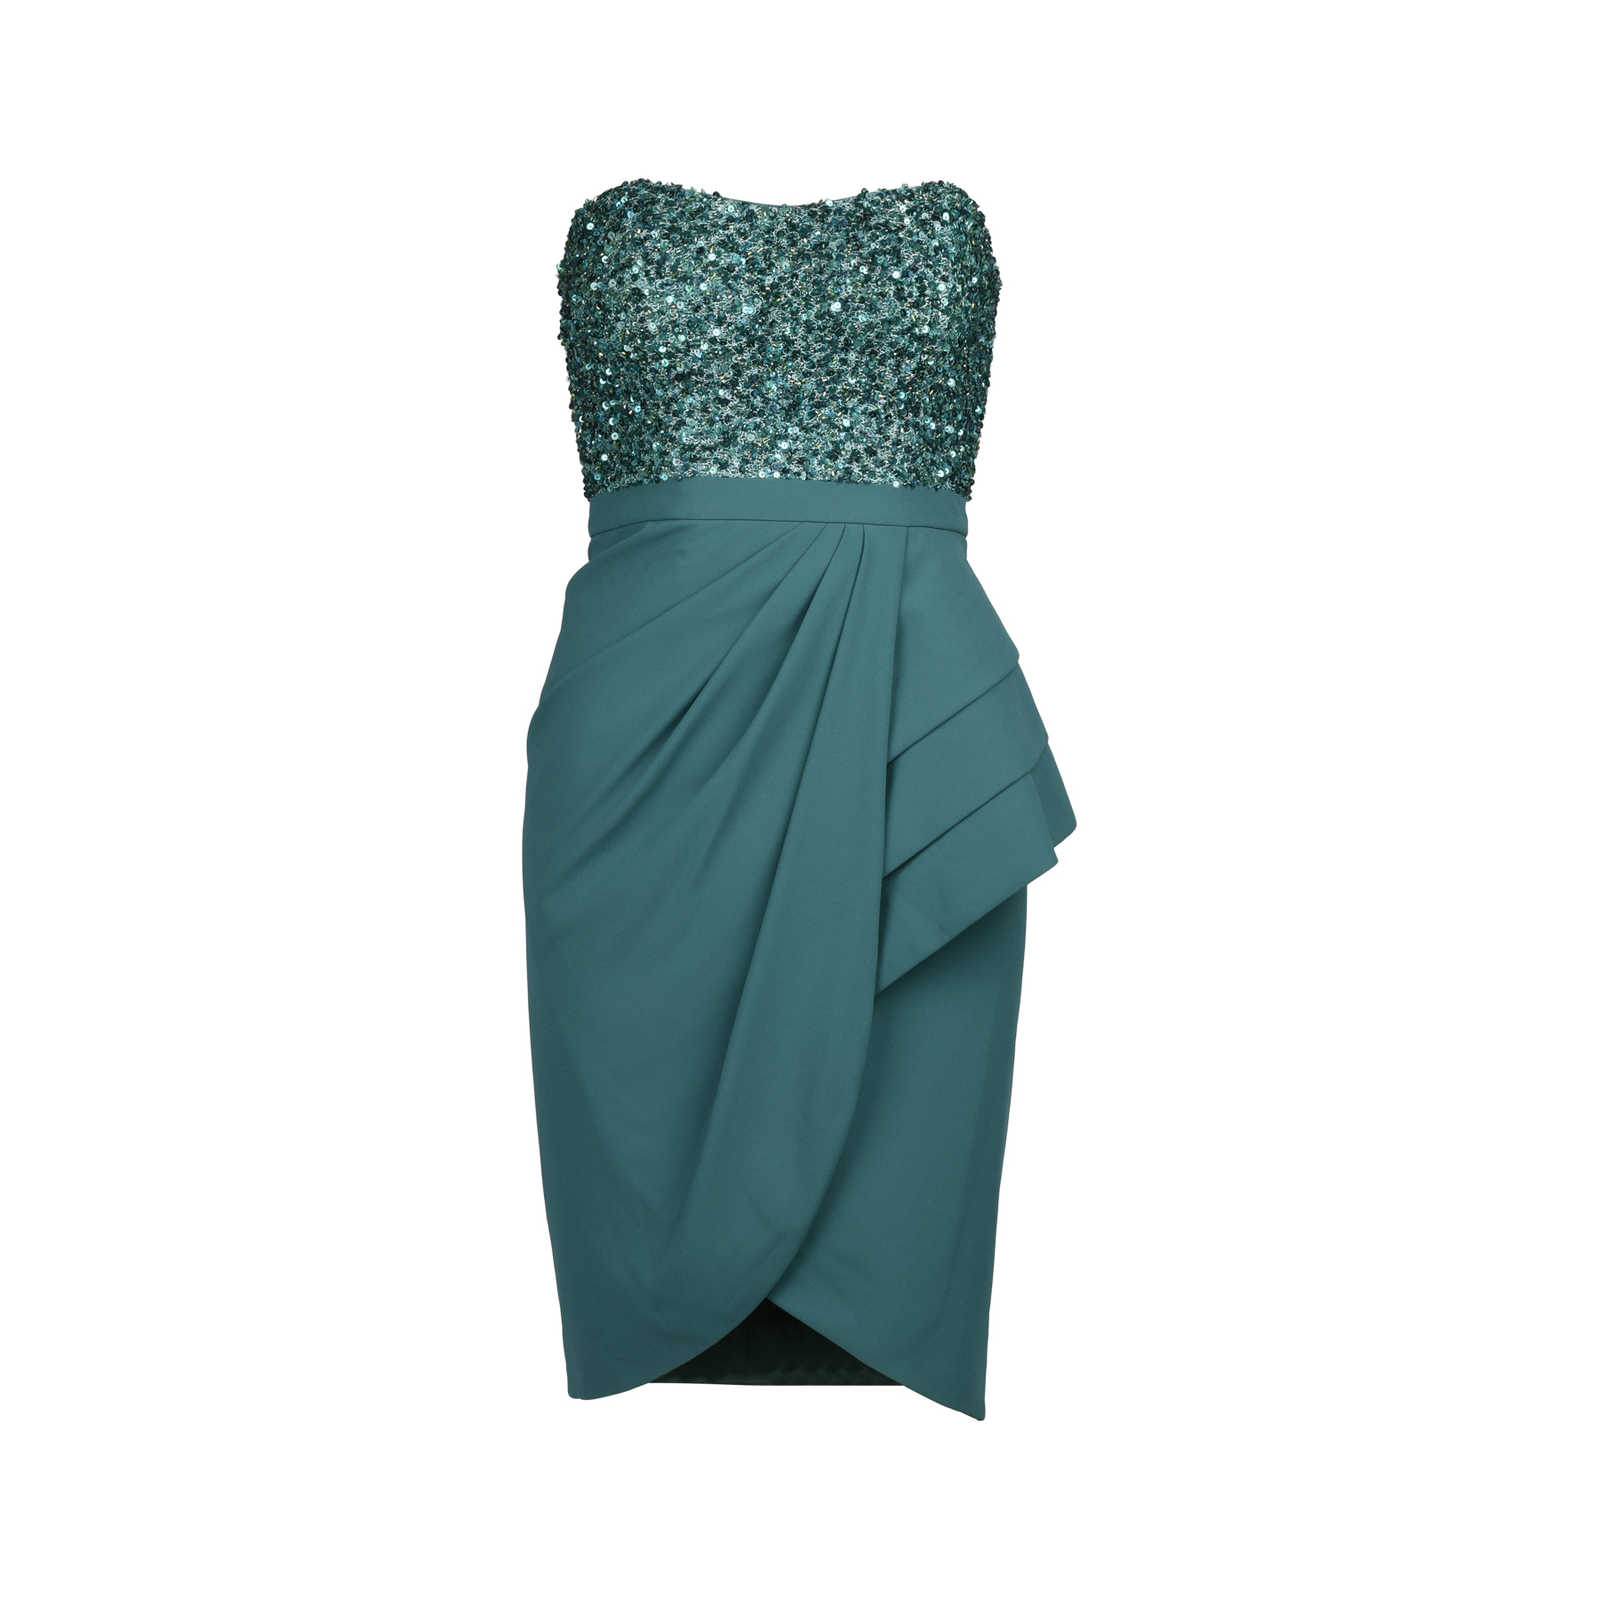 0e8a876ce02 Authentic Second Hand Badgley Mischka Sequin Strapless Cocktail Dress  (PSS-415-00036) ...